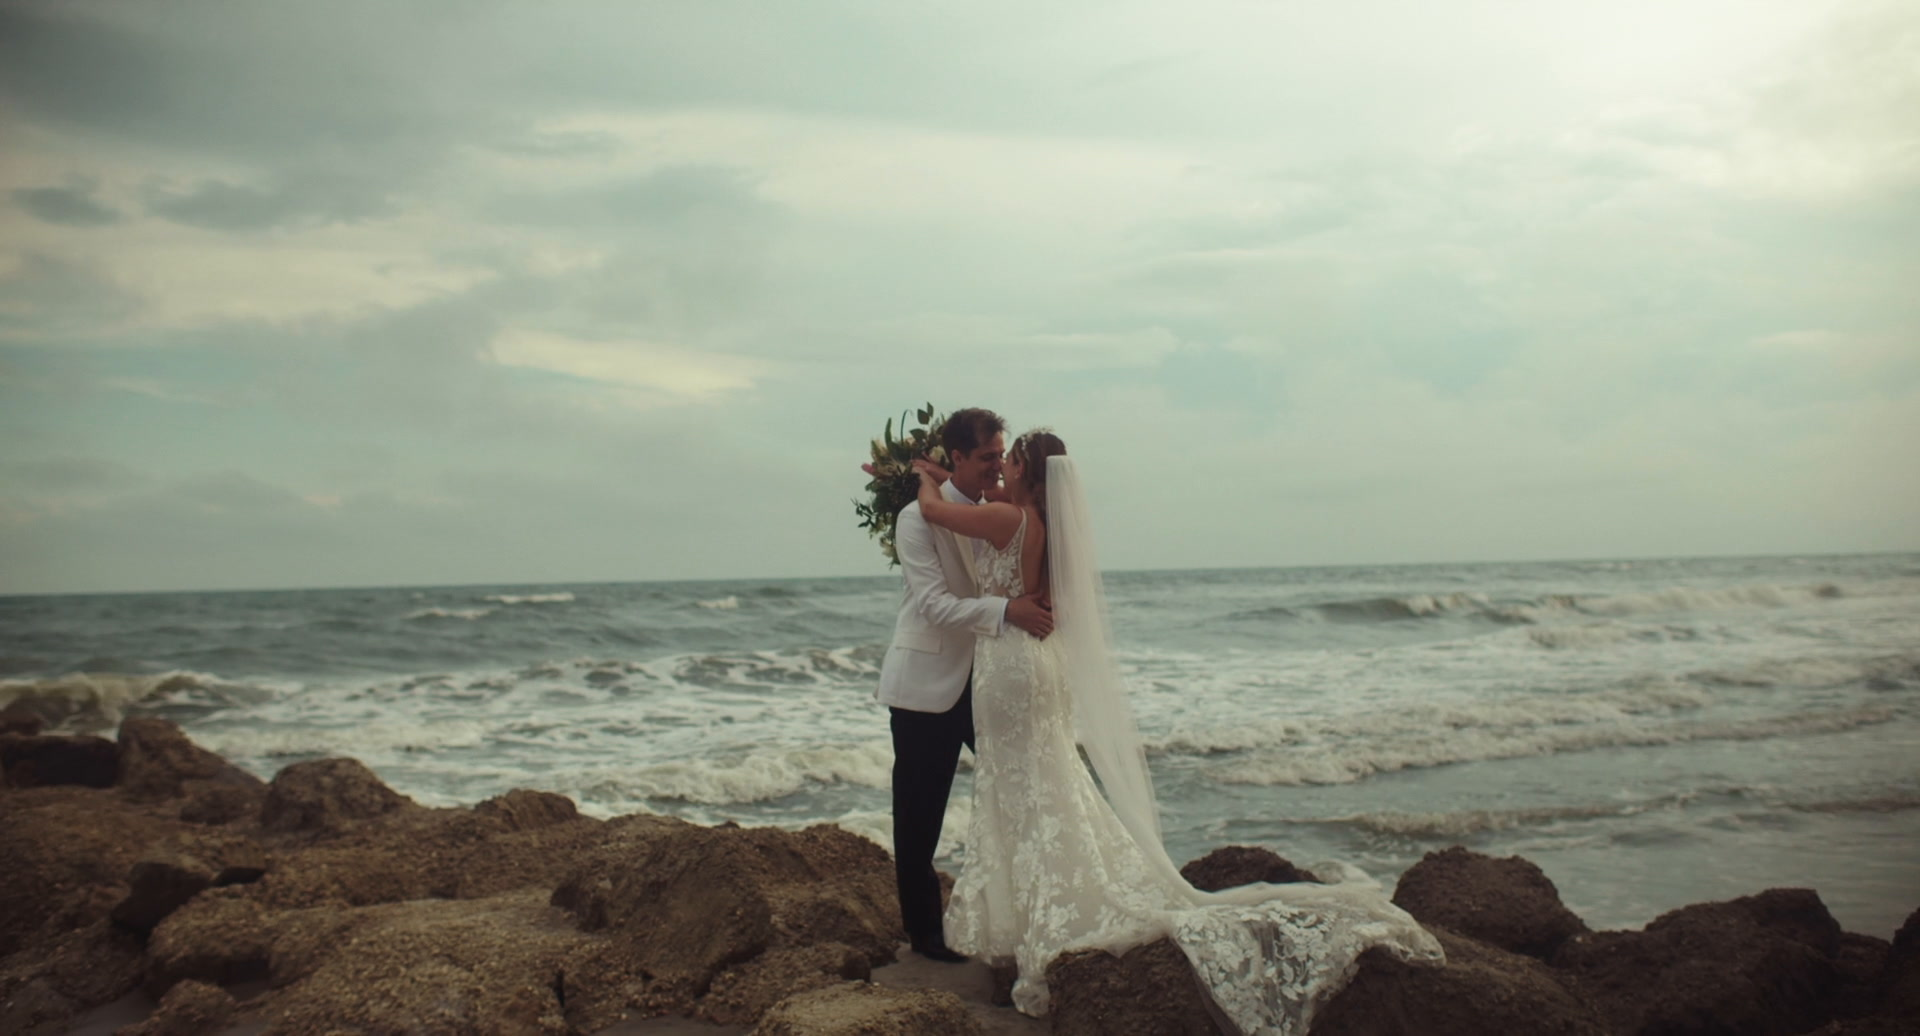 Bailey + Reynolds | Folly Beach, South Carolina | 1123 East Arctic Ave